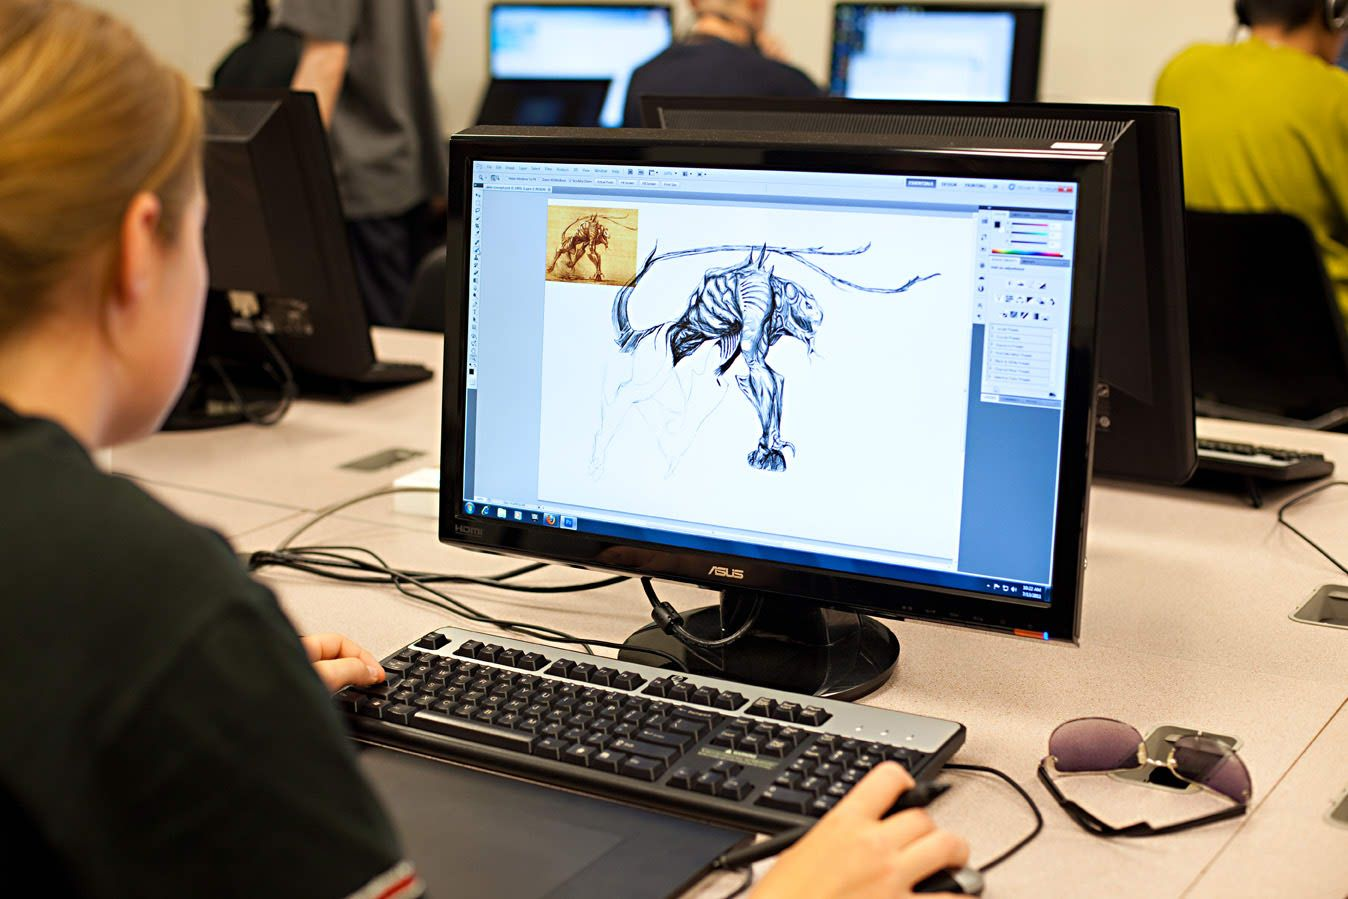 Pin by Photonic Design on Game Design and Development